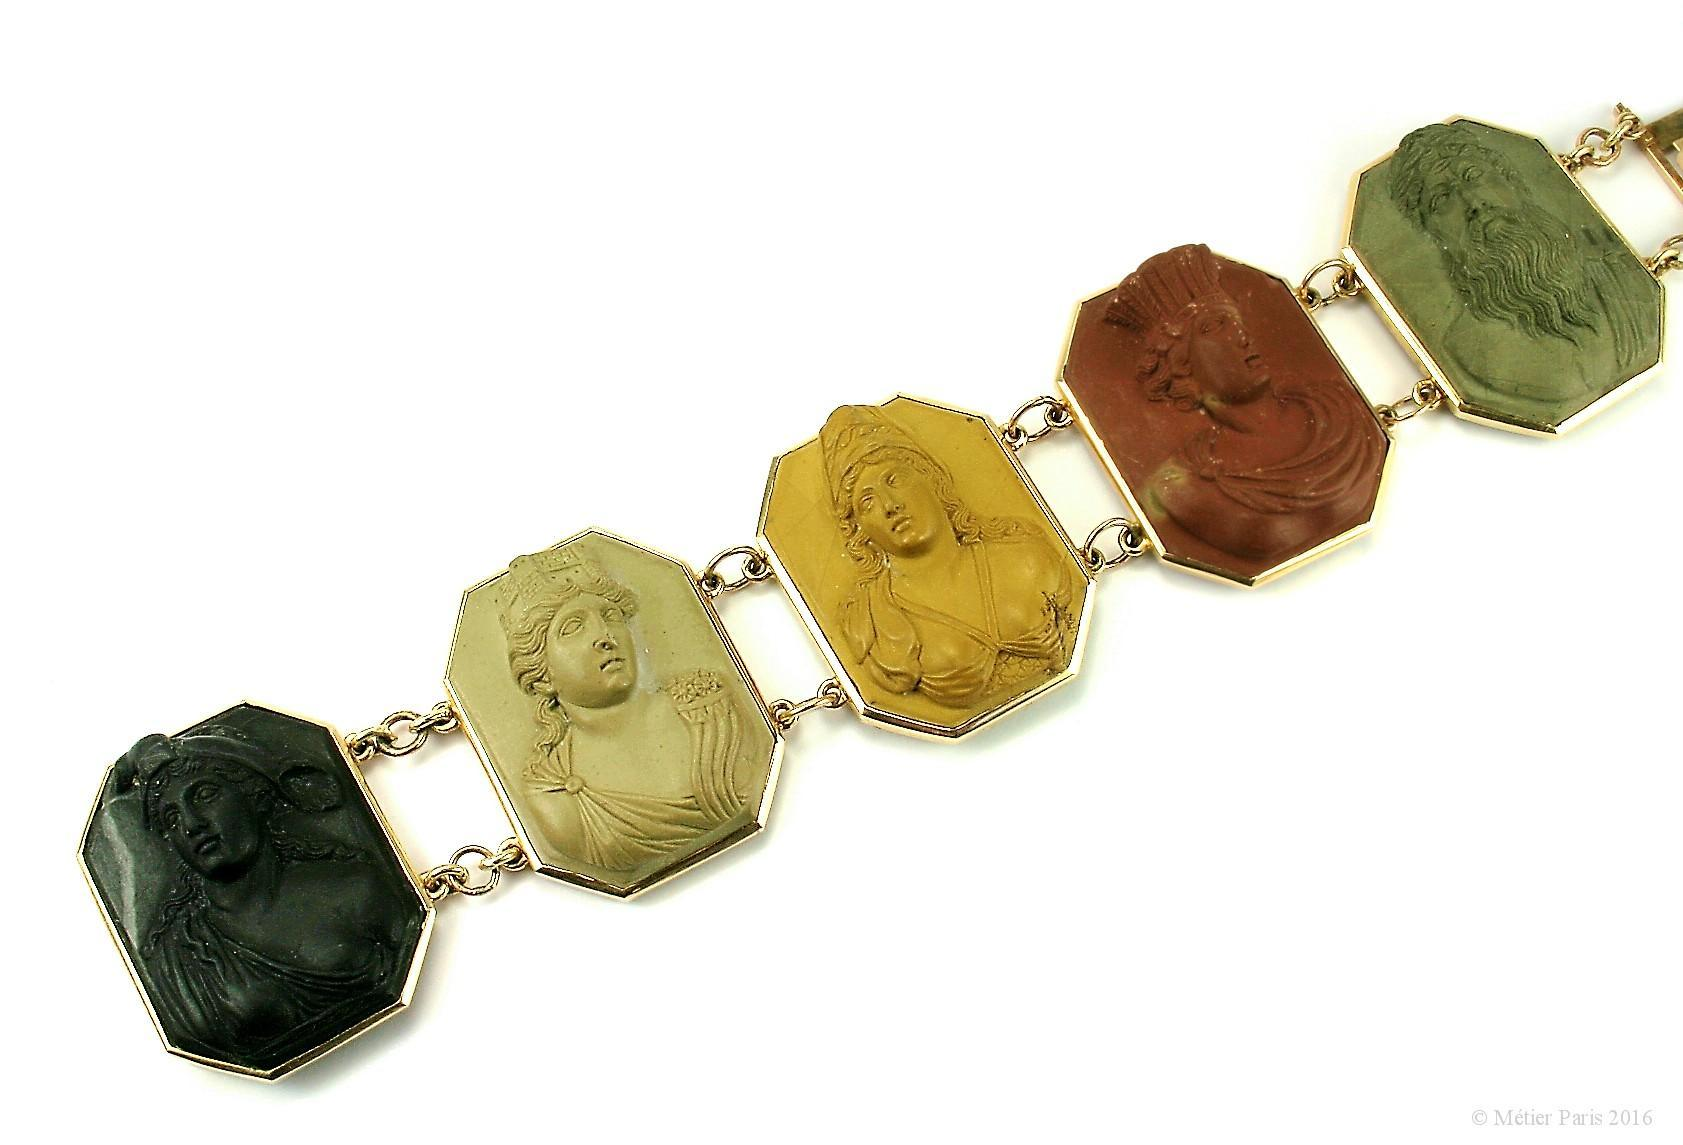 A Very Fine Antique Neoclassical Lava Cameo Bracelet, c. 1790 – 1810